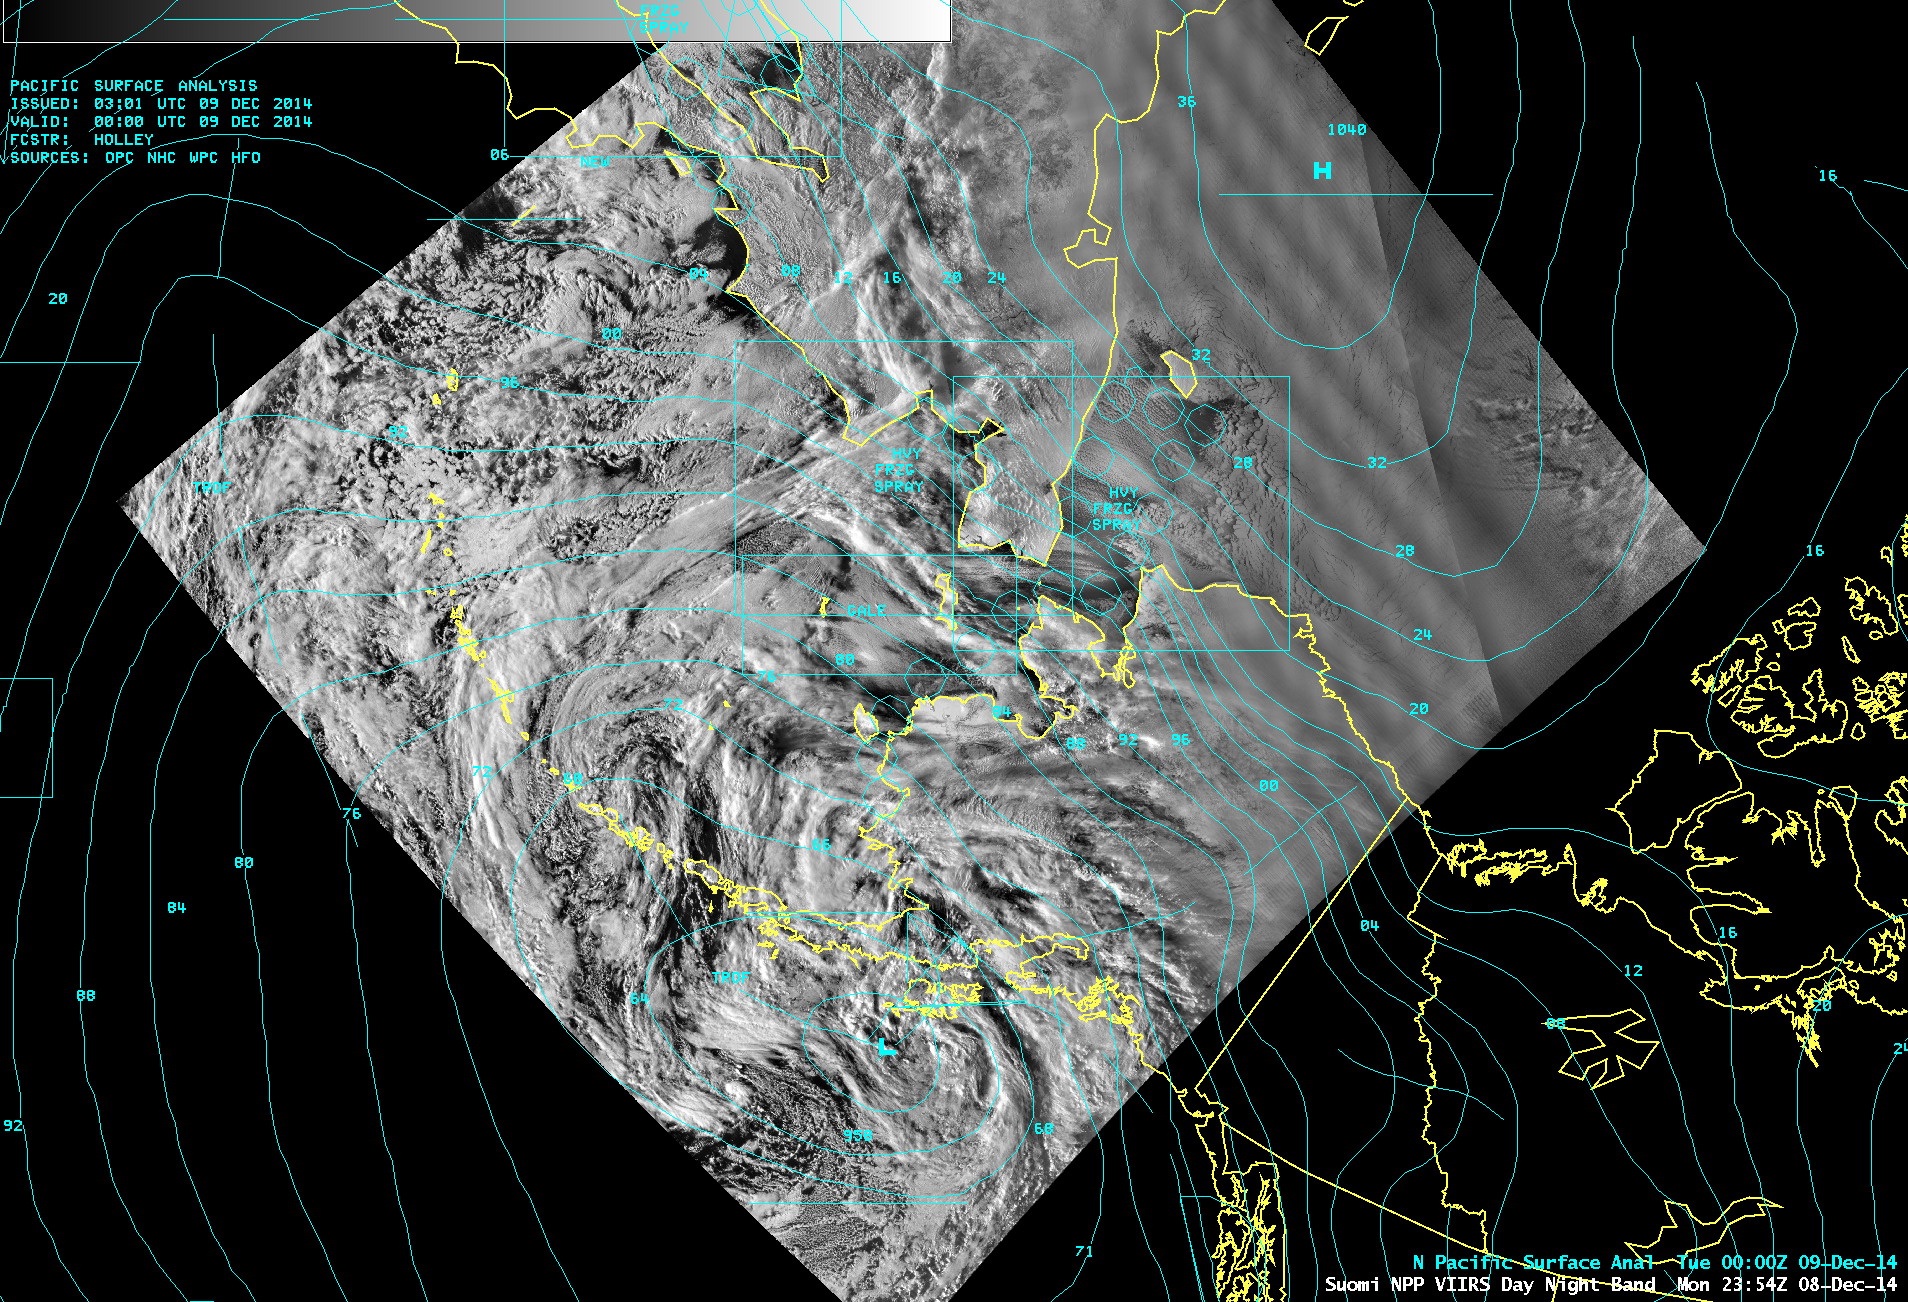 Suomi NPP VIIRS 0.7 µm Day/Night Band image, with surface analysis